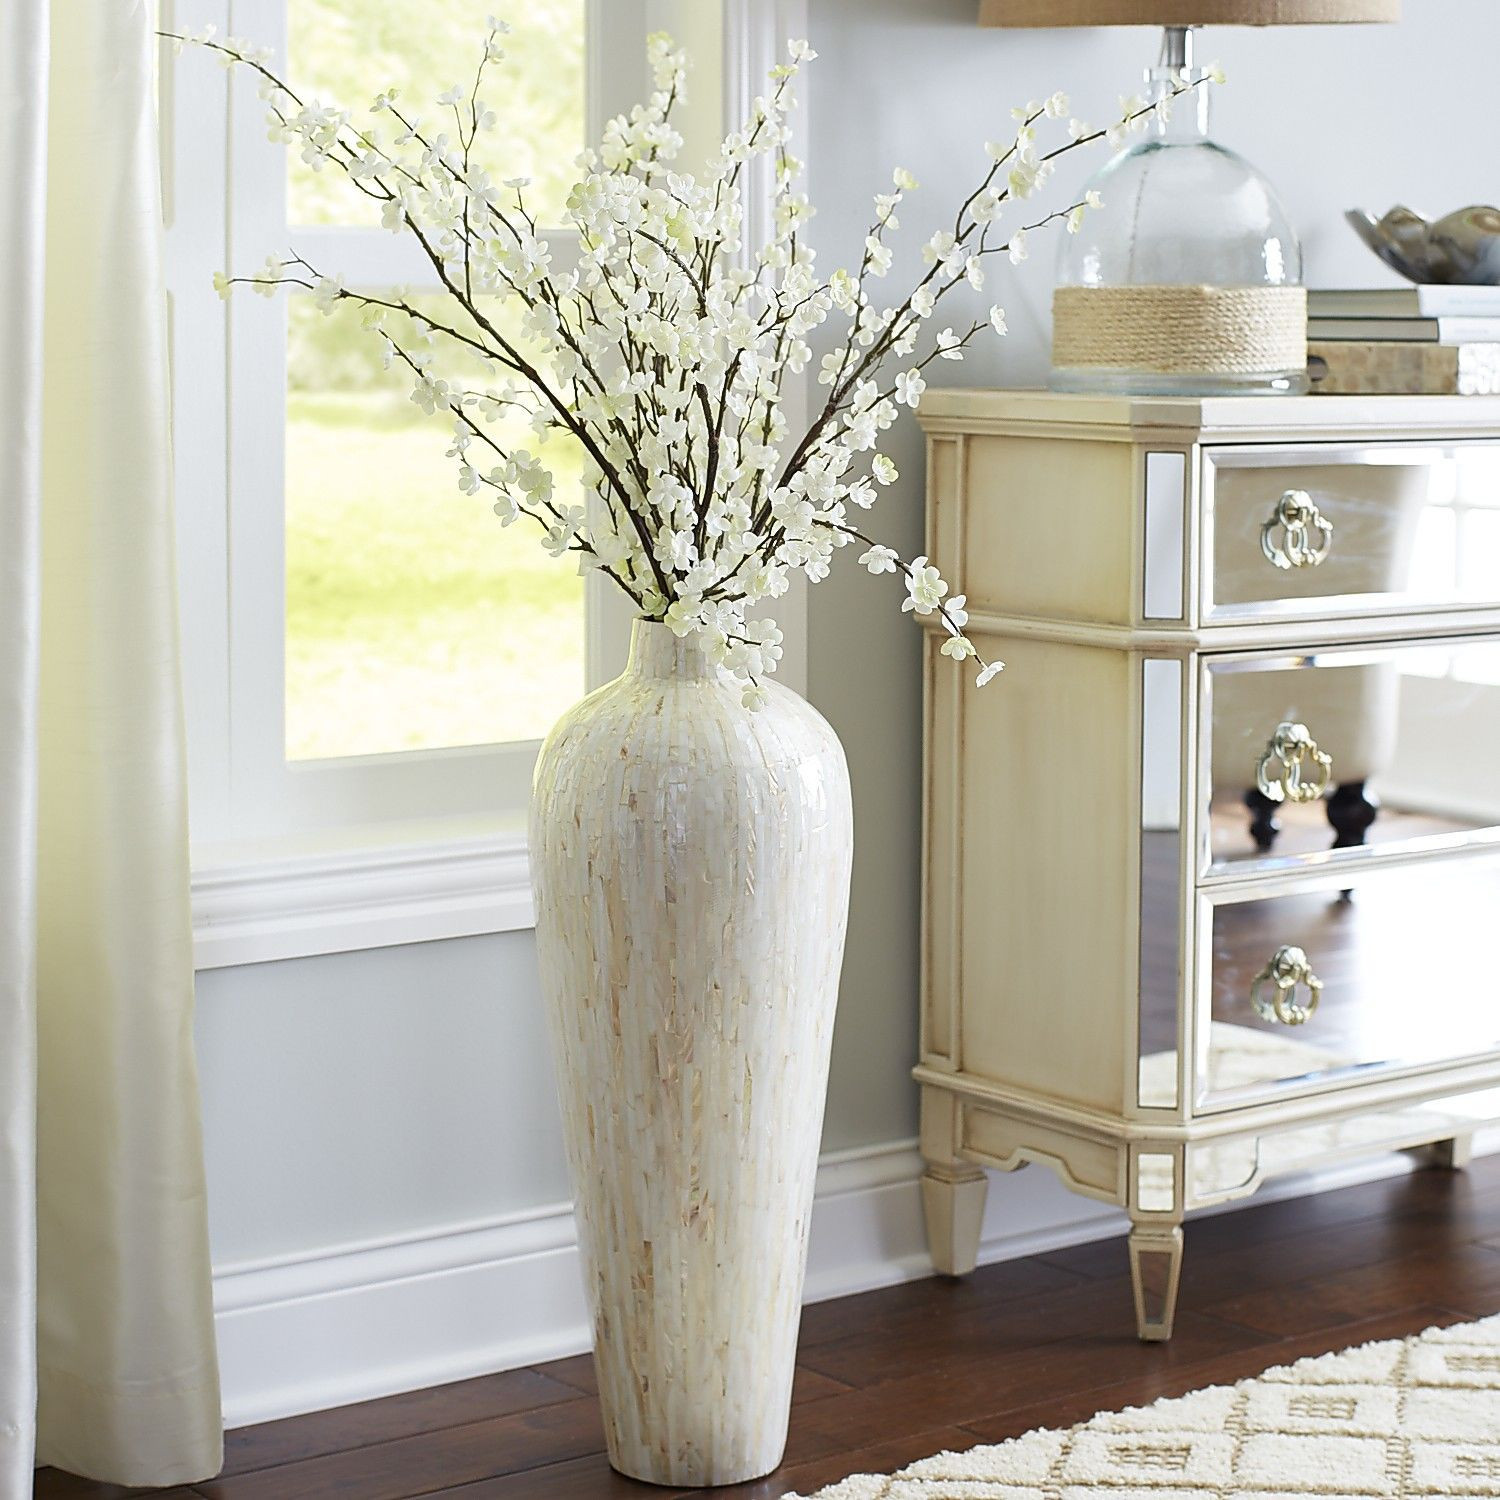 Oversized Glass Vase Of Ideas Extra Large Vases Awesome Floor Vase Large Homes Floor Plans Inside Extra Large Vases Awesome Floor Vase Large Homes Floor Plans